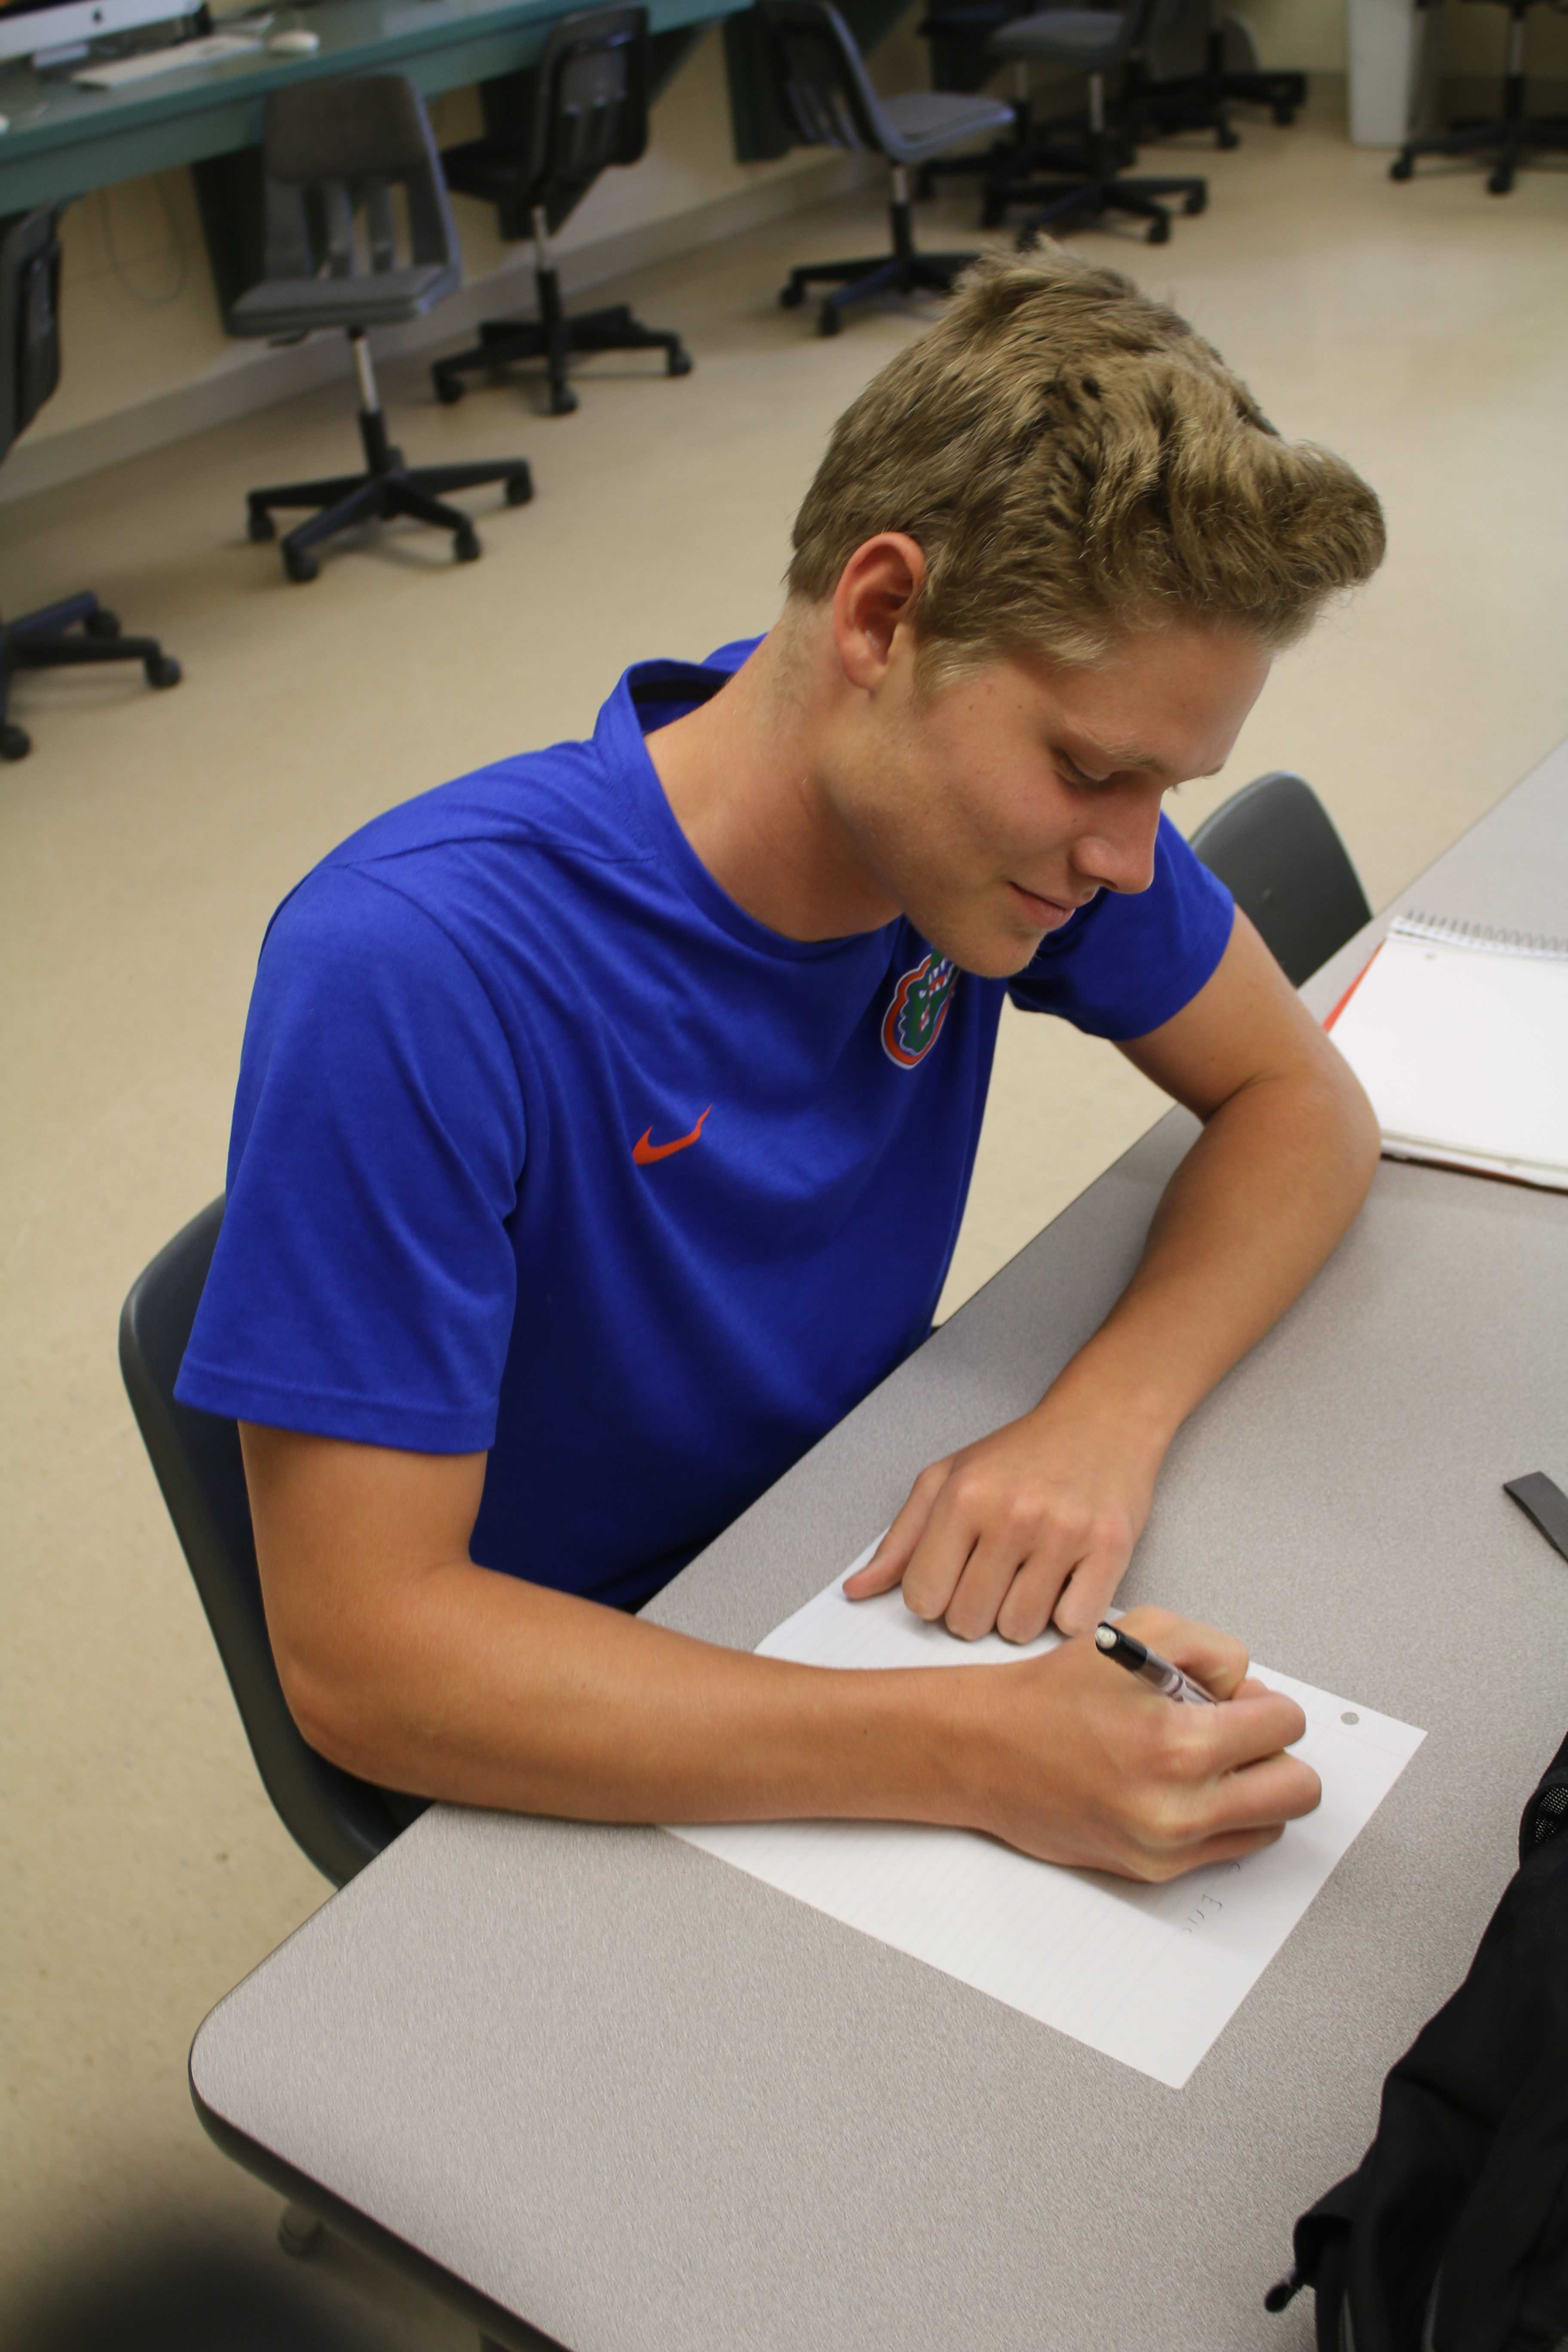 """With a smile on his face, sophomore Eric Hartless writes his response letter to his pen pal, Khloe. She asked him if he liked Frozen, and what his favorite sport was. """"It's a cool idea to care about little kids as a team, and talk about our lives with them,"""" Hartless said. """"They look up to us, so I'm sure when we write them, it makes them feel important."""""""